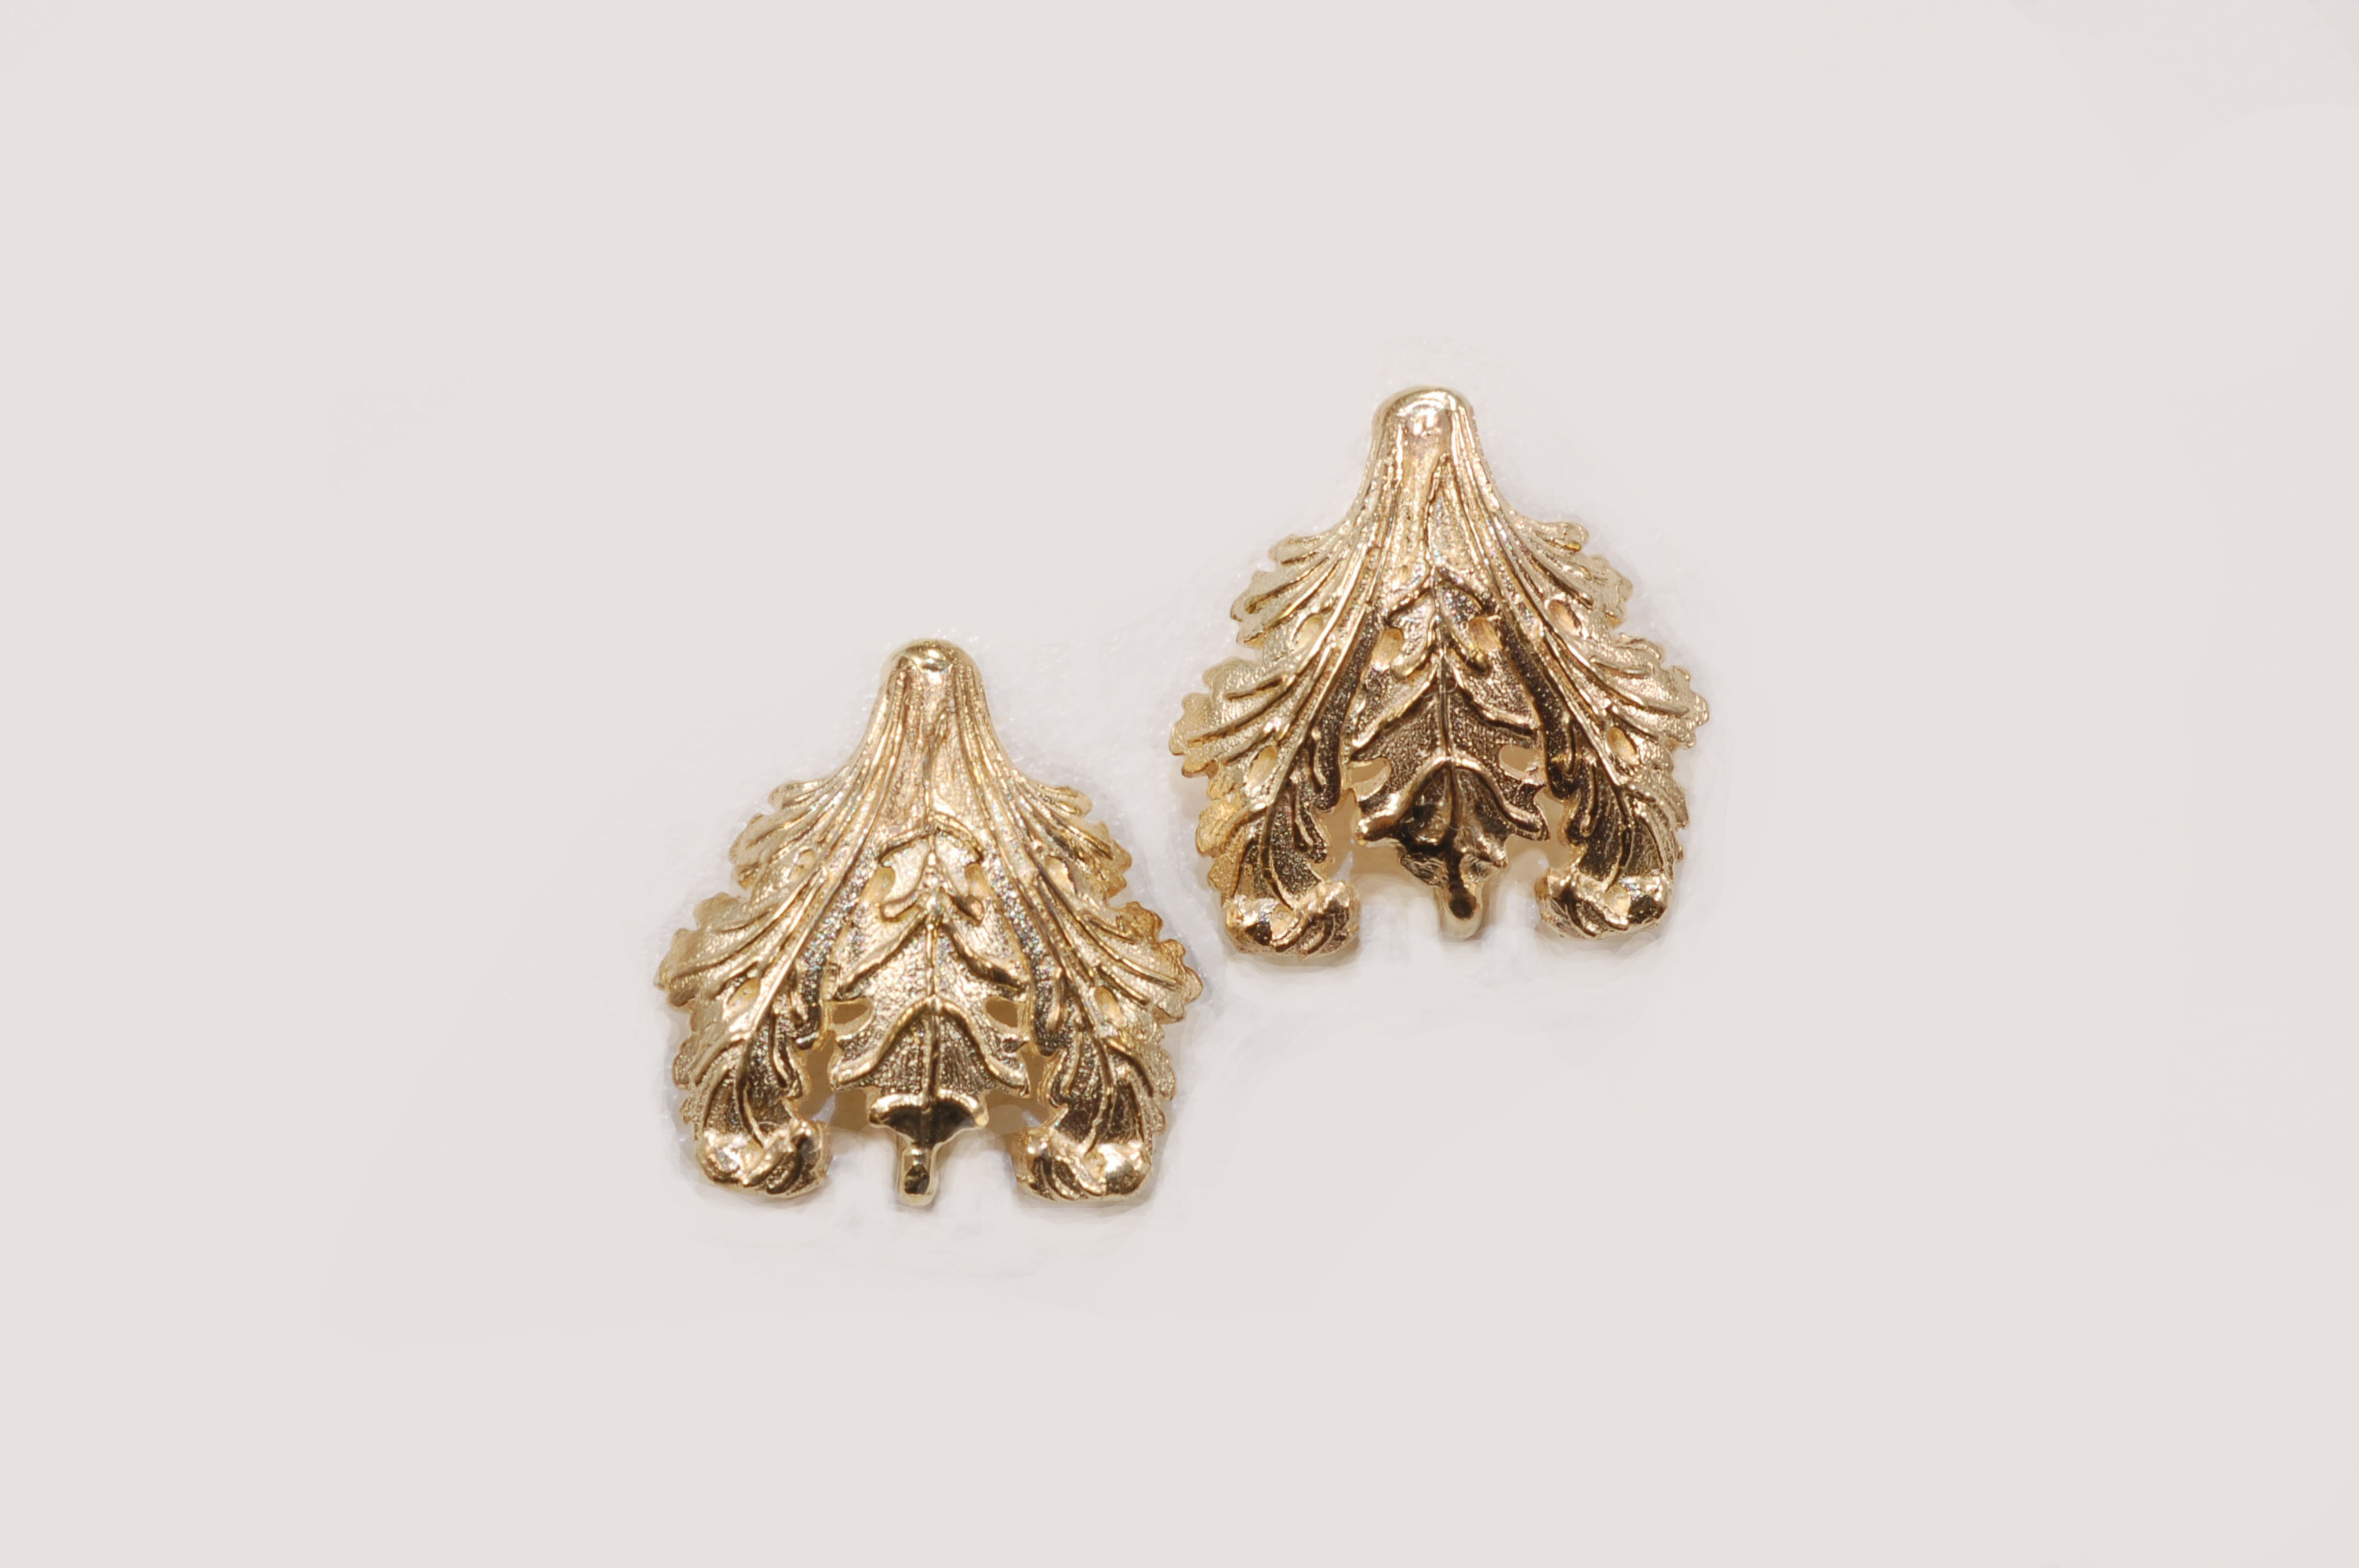 Unlimited Provencal Balcony Yellow Gold Earring Tops – Kas-A-Designs